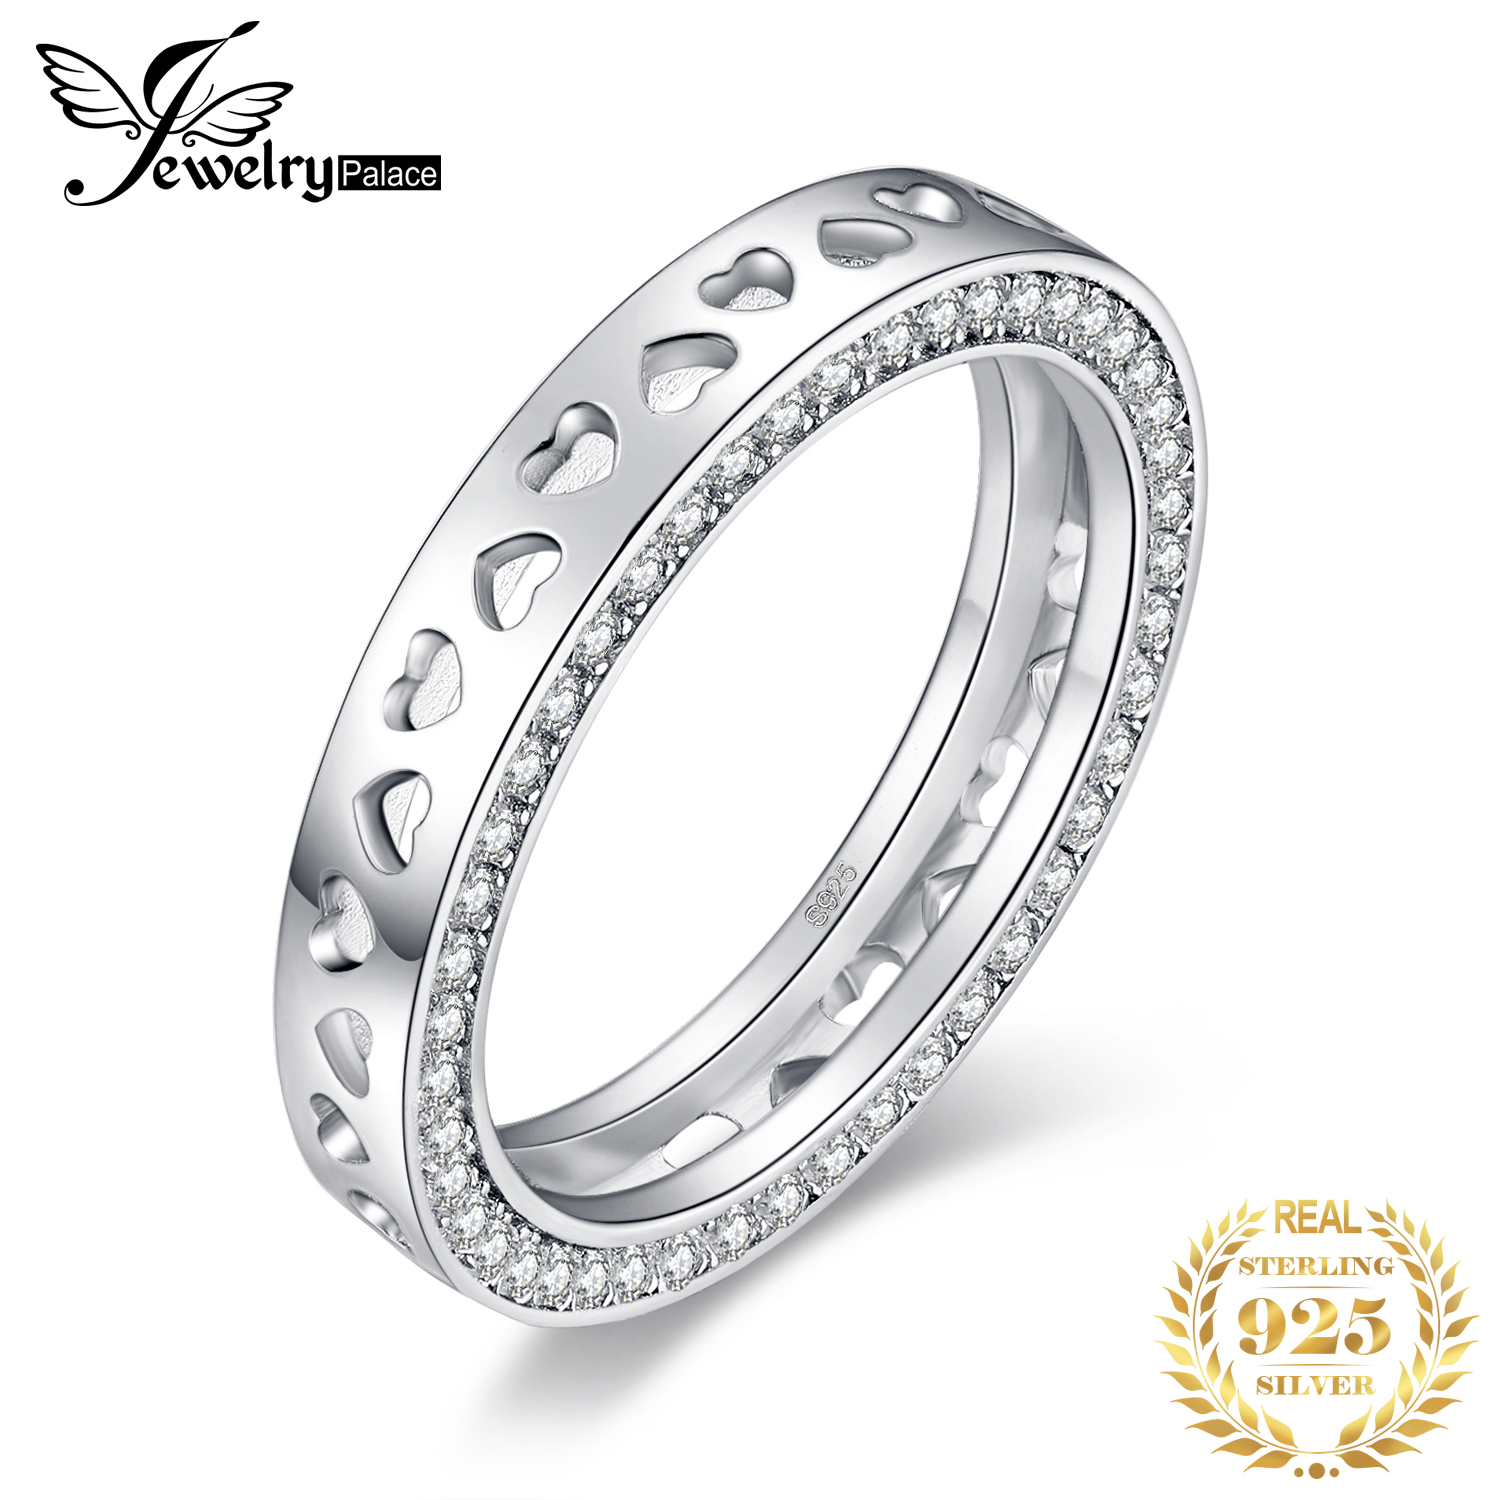 JPalace I Love You Moon Back Wedding Rings 925 Sterling Silver Rings For Women Anniversary Ring Eternity Band Silver 925 Jewelry